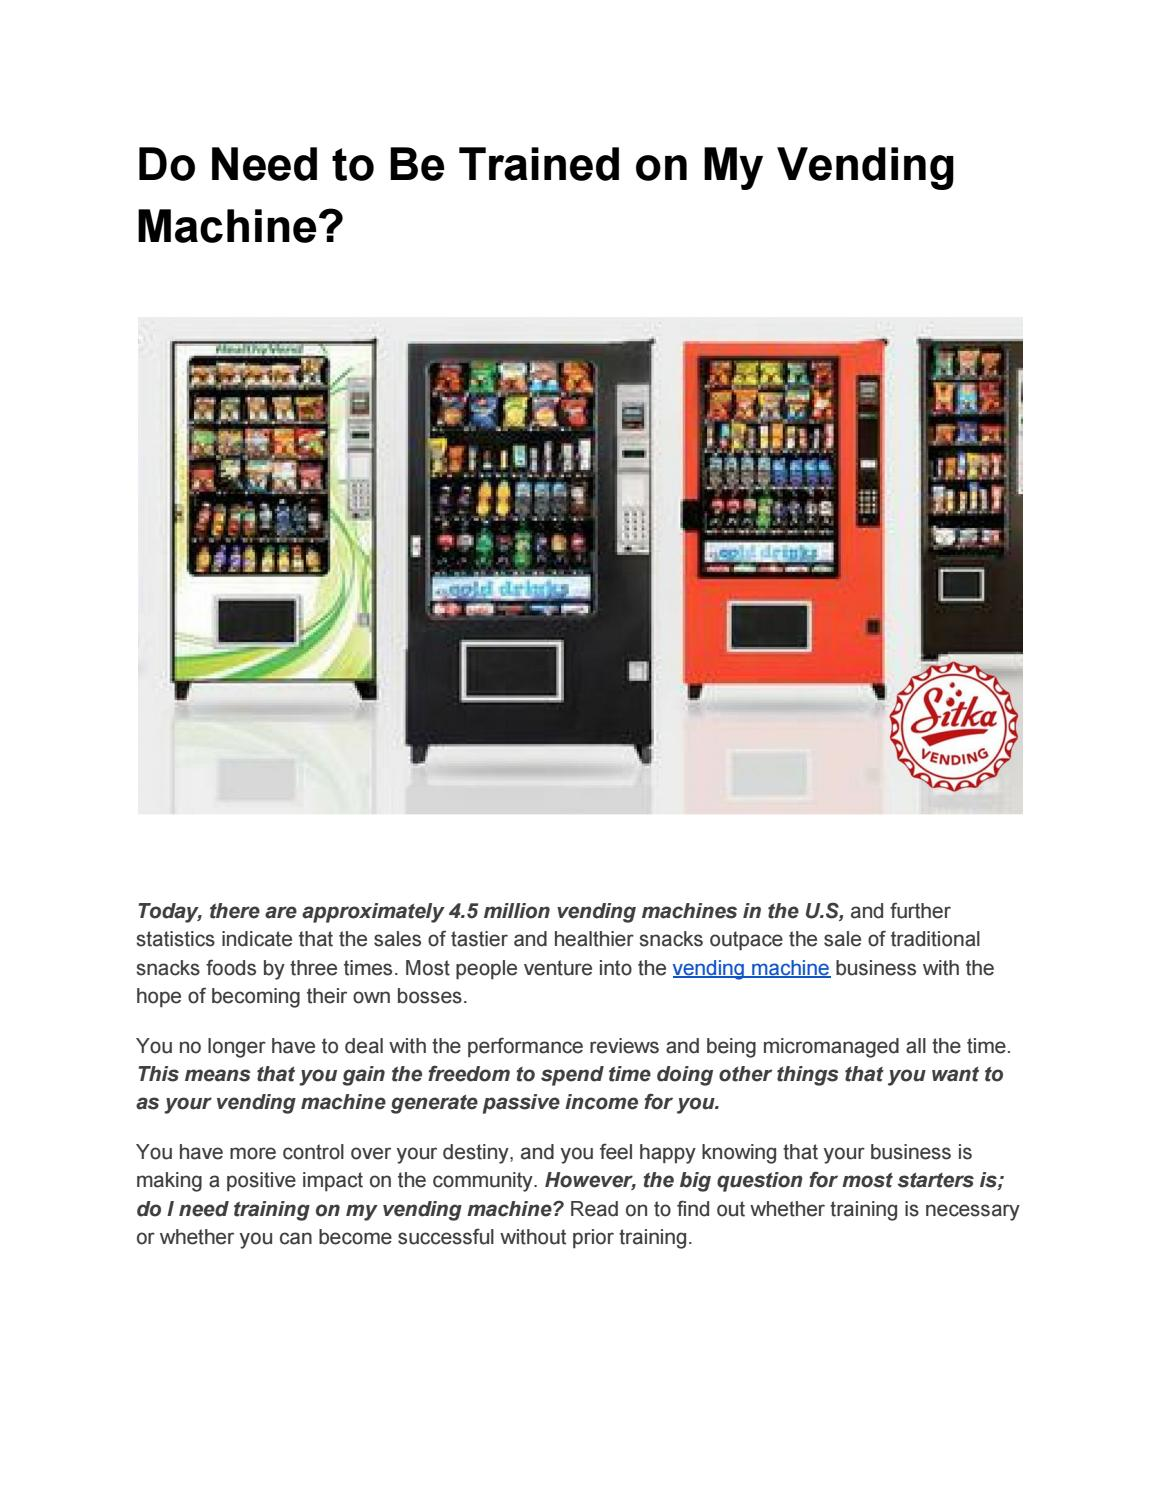 Do need to be trained on my vending machine by prowriter4life - issuu